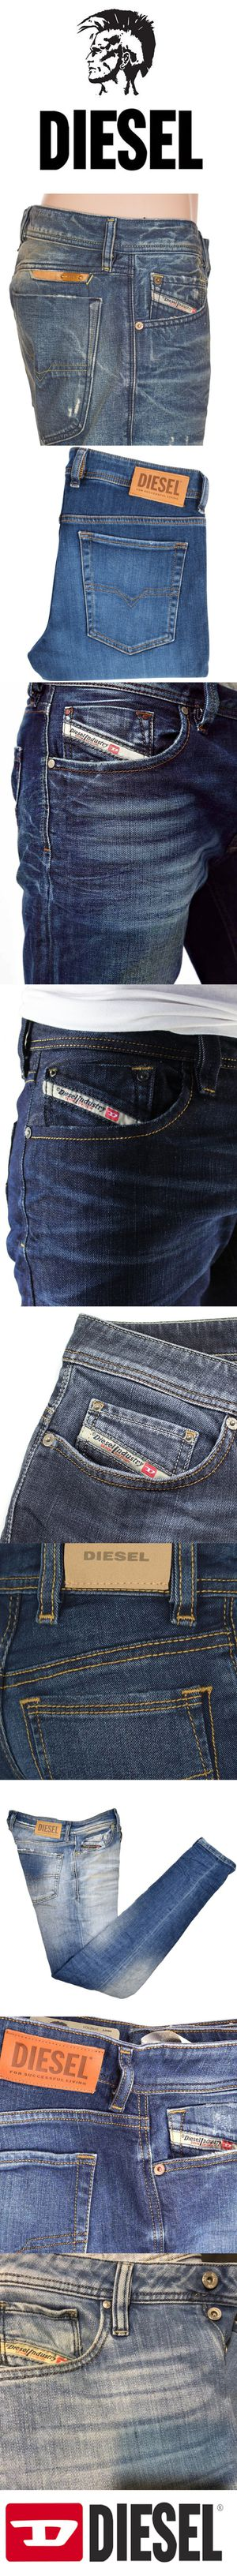 Photo Diesel Jeans $45 each pair